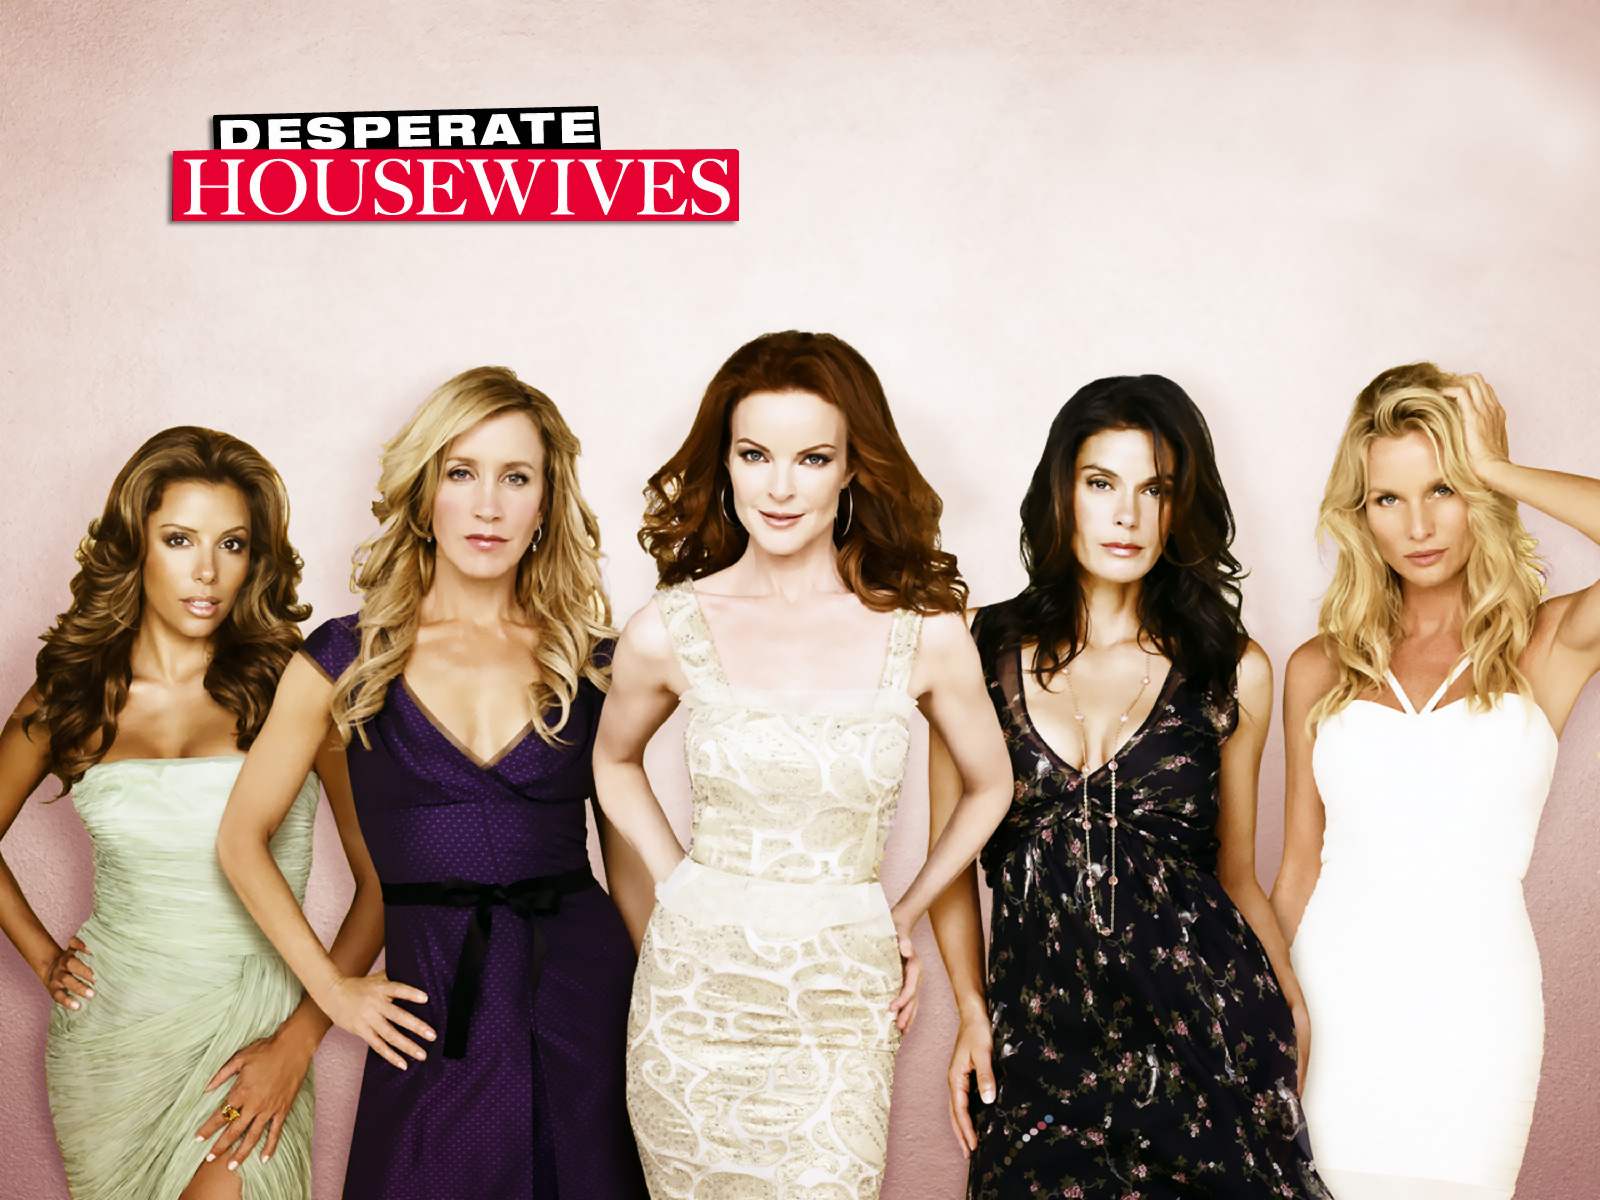 http://2.bp.blogspot.com/-To9Uwj_G5ZI/Th2YXCxaXSI/AAAAAAAAACA/CvOdXPDO26E/s1600/desperate-housewives_0005.jpg